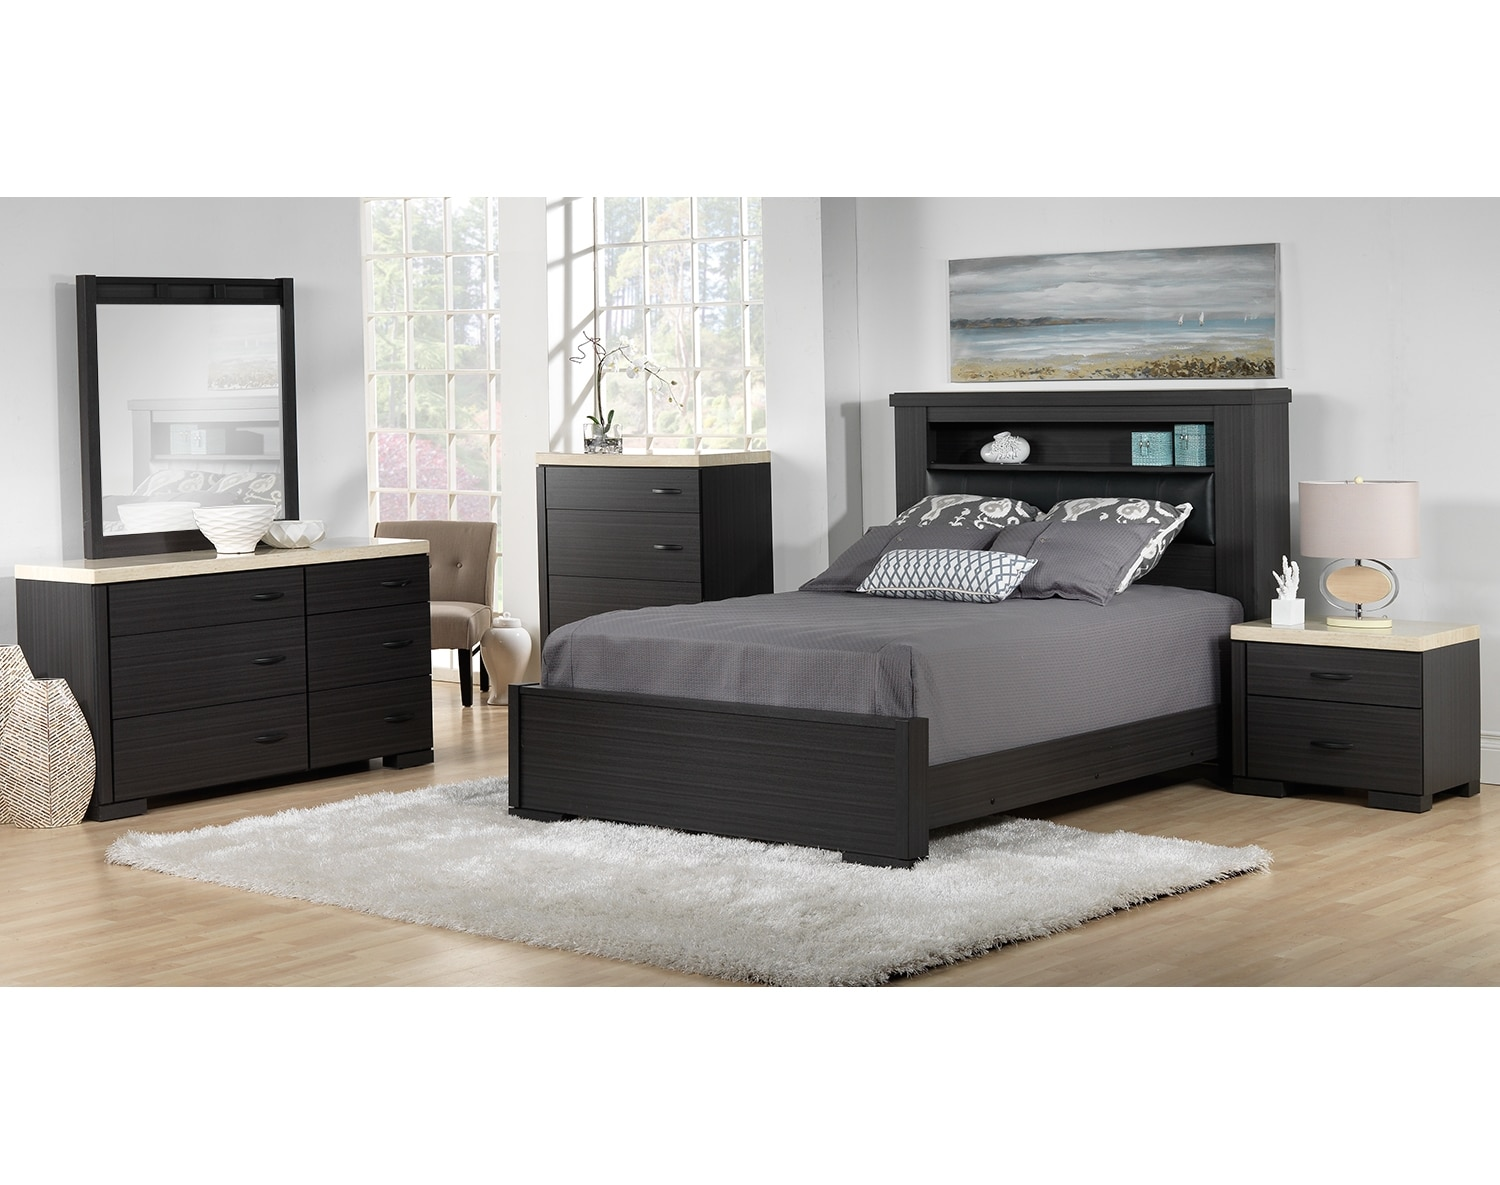 Santee 5 piece king bedroom set charcoal white leon 39 s for Chambre a coucher leon